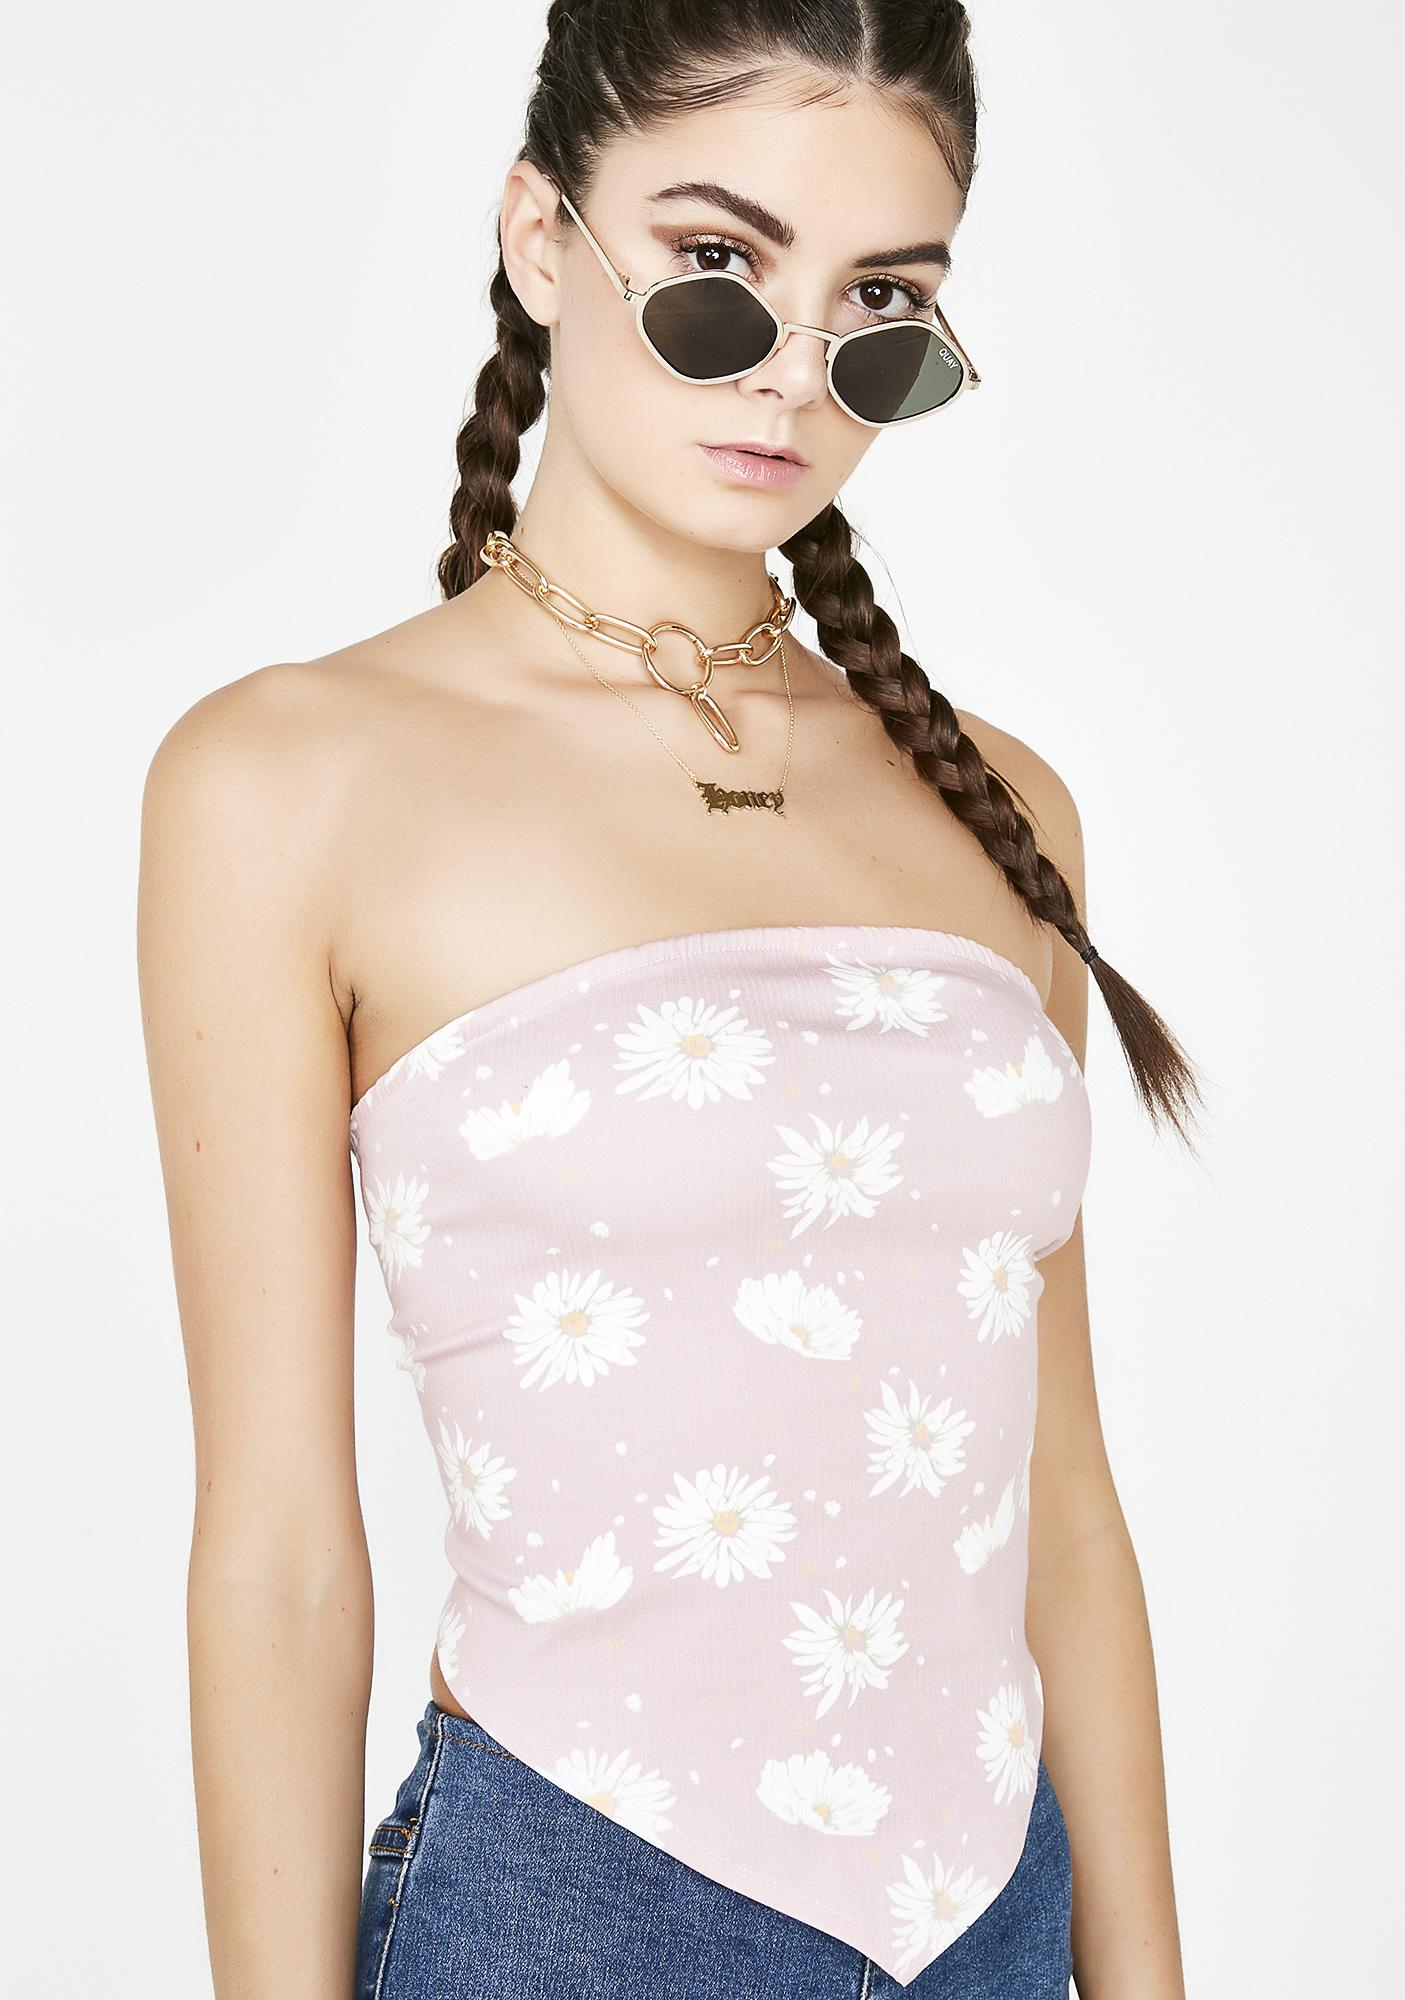 Hazey Dazey Crop Top